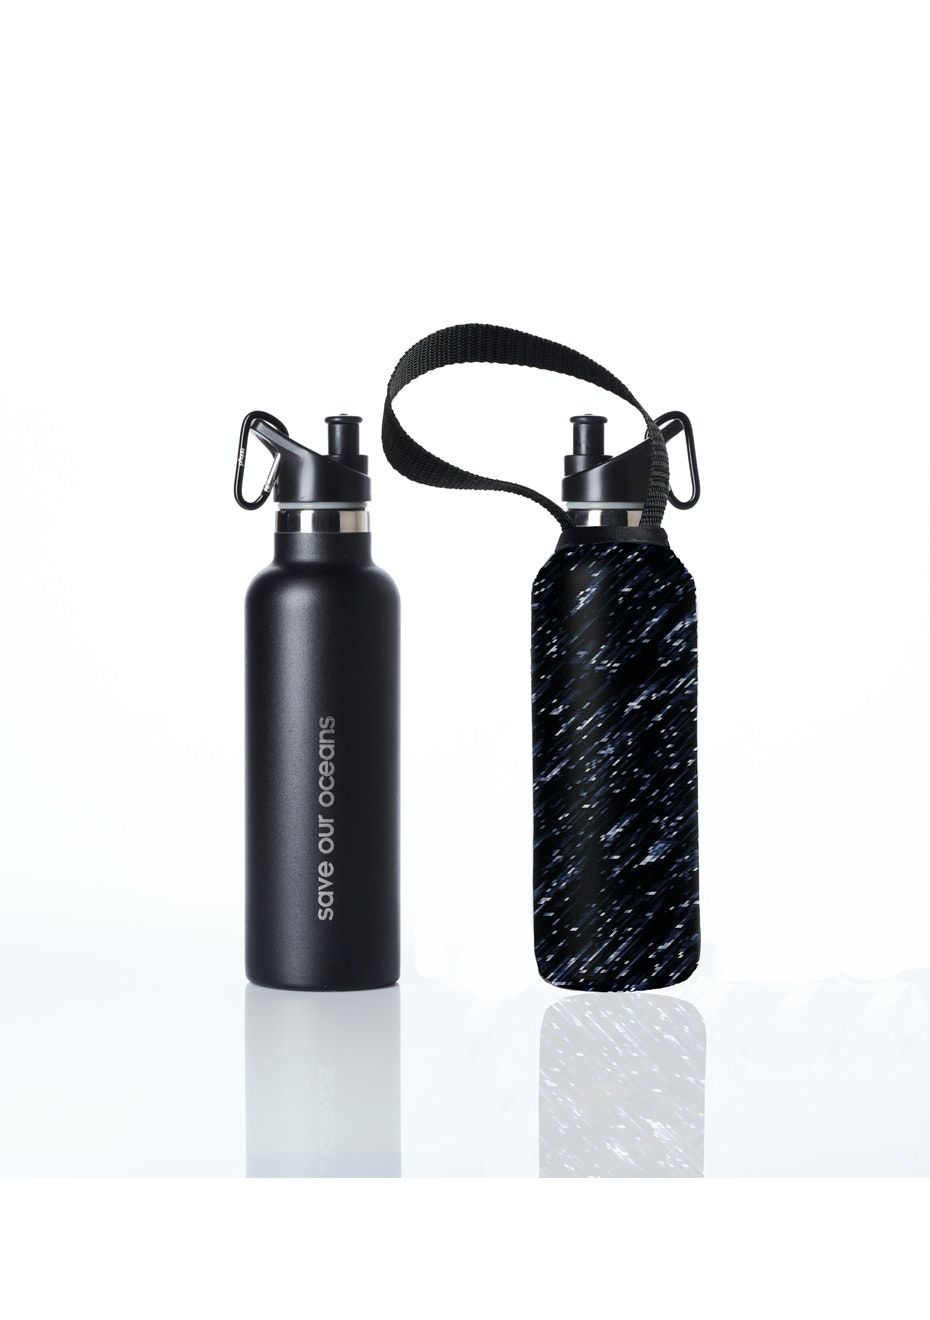 BBBYO - Thermal Traveller Bottle+ Carry Cover (Night Rain Print)- sports cap - 750 ml Black